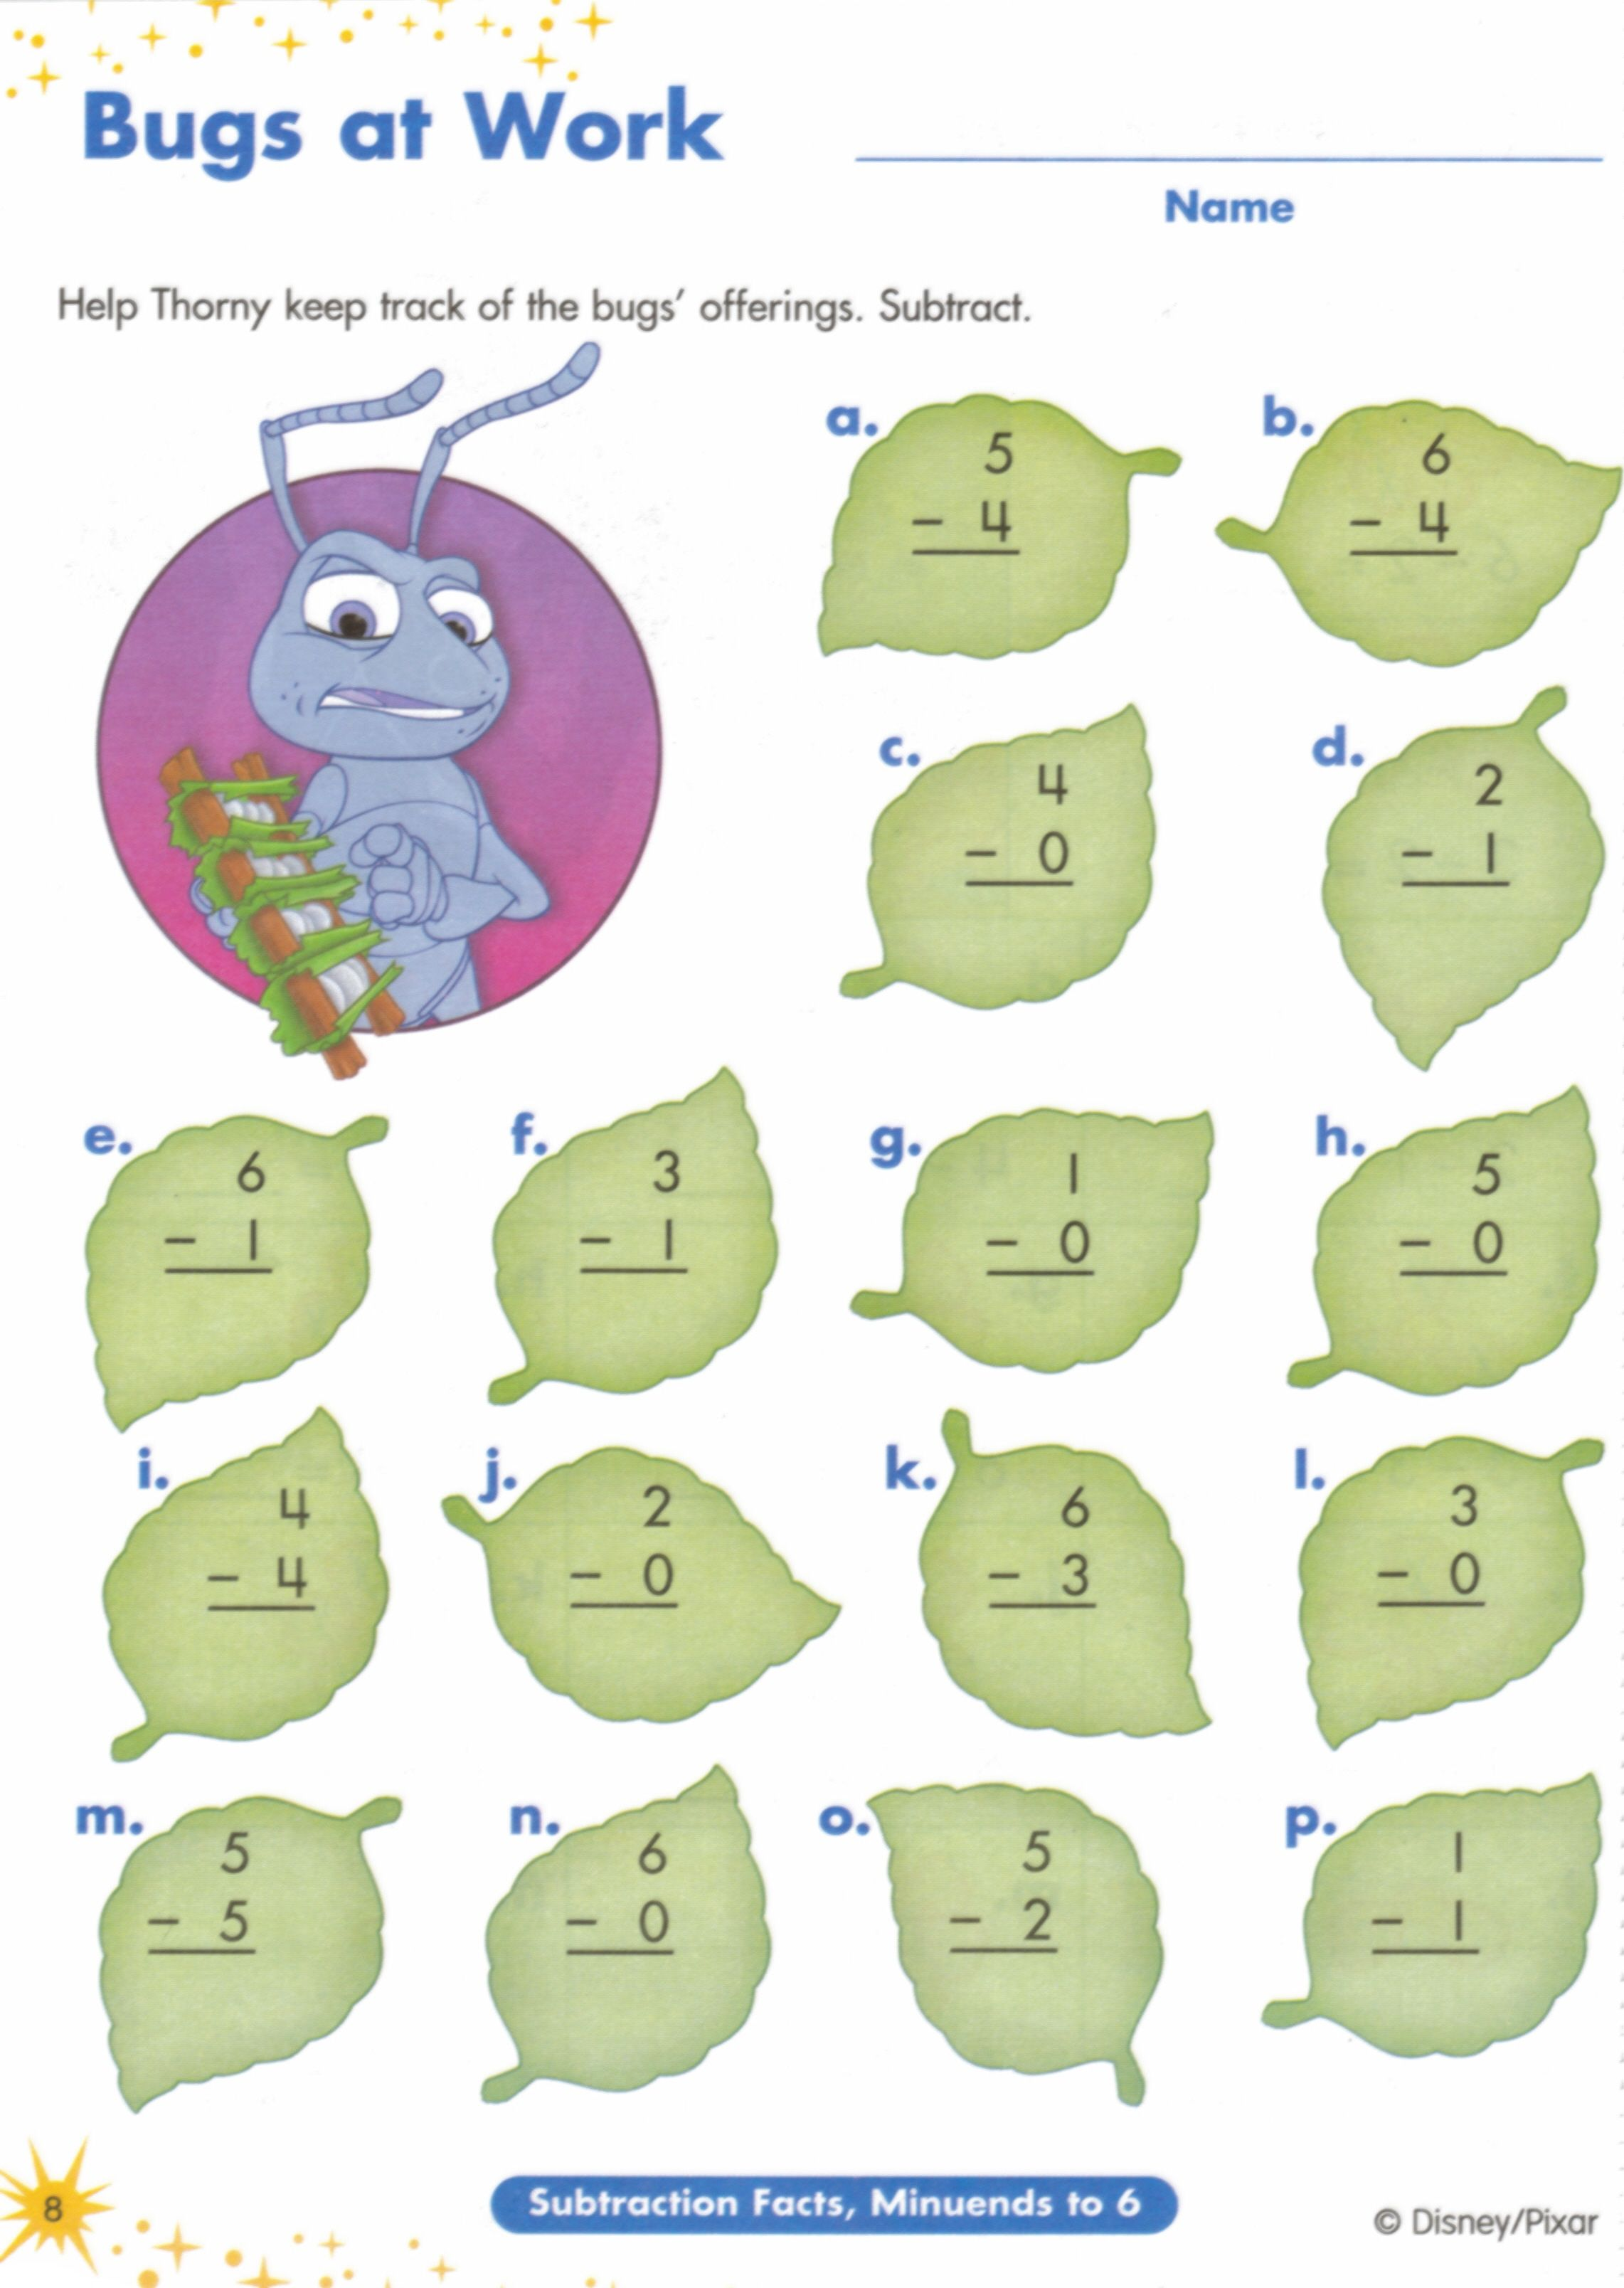 Proatmealus  Personable  Images About Worksheets On Pinterest  Fun Facts For Kids  With Heavenly  Images About Worksheets On Pinterest  Fun Facts For Kids Earth Day Worksheets And Jungles With Appealing Soil Horizons Worksheet Also Aa Twelve Steps Worksheets In Addition Social Phobia Worksheets And Find Slope Worksheet As Well As Equivalent Ratios Worksheet Pdf Additionally Digital Clock Worksheets From Pinterestcom With Proatmealus  Heavenly  Images About Worksheets On Pinterest  Fun Facts For Kids  With Appealing  Images About Worksheets On Pinterest  Fun Facts For Kids Earth Day Worksheets And Jungles And Personable Soil Horizons Worksheet Also Aa Twelve Steps Worksheets In Addition Social Phobia Worksheets From Pinterestcom